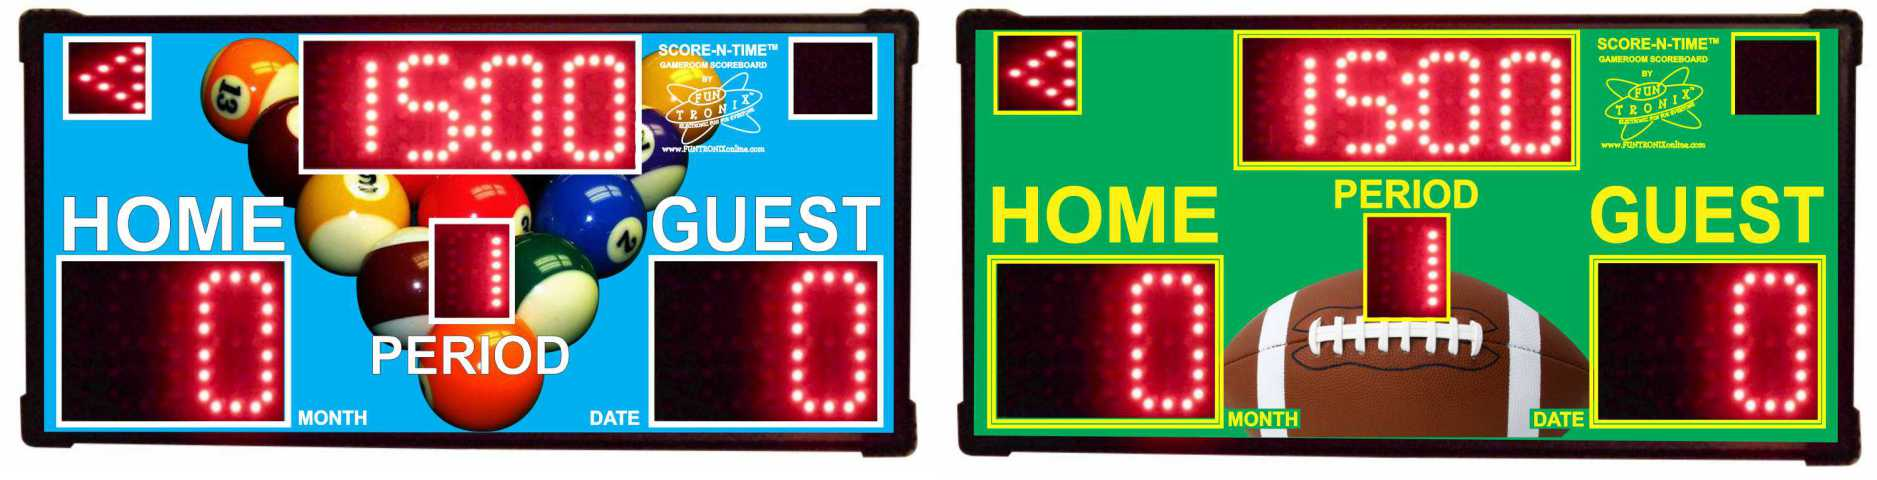 Custom Gameroom Scoreboards